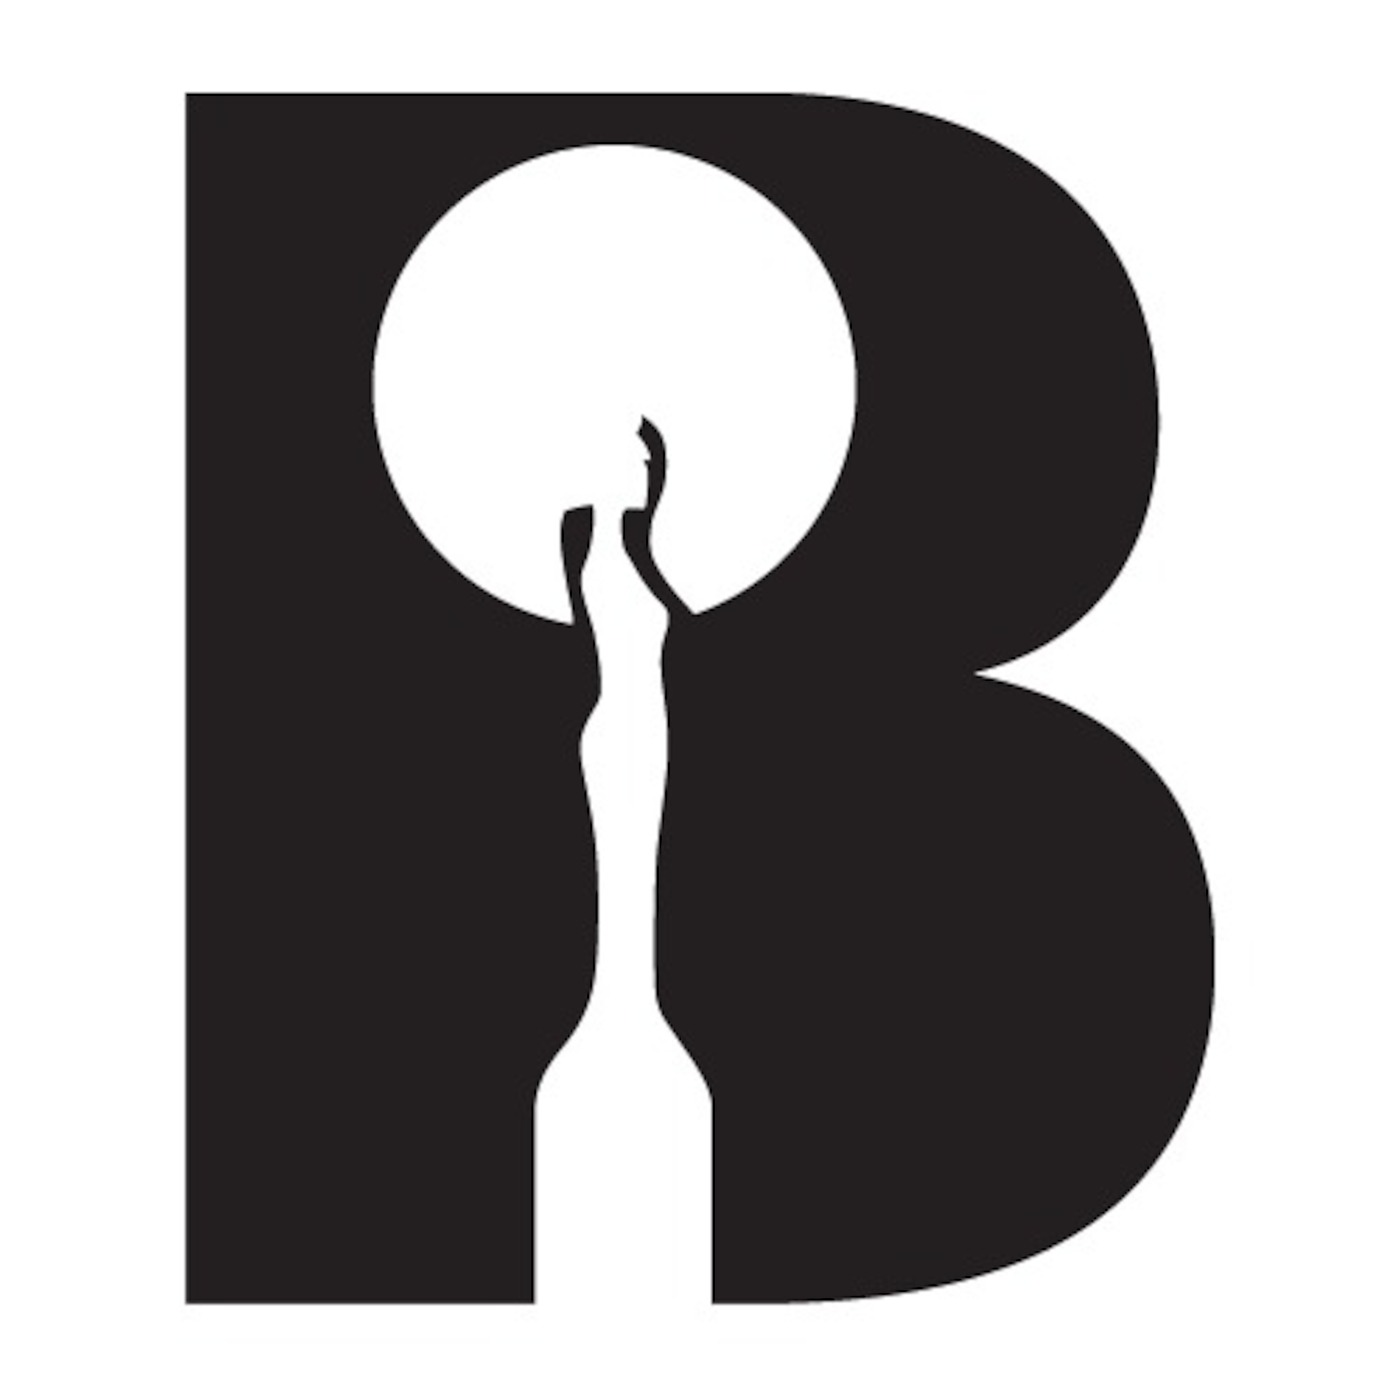 BRIT Awards' Podcast